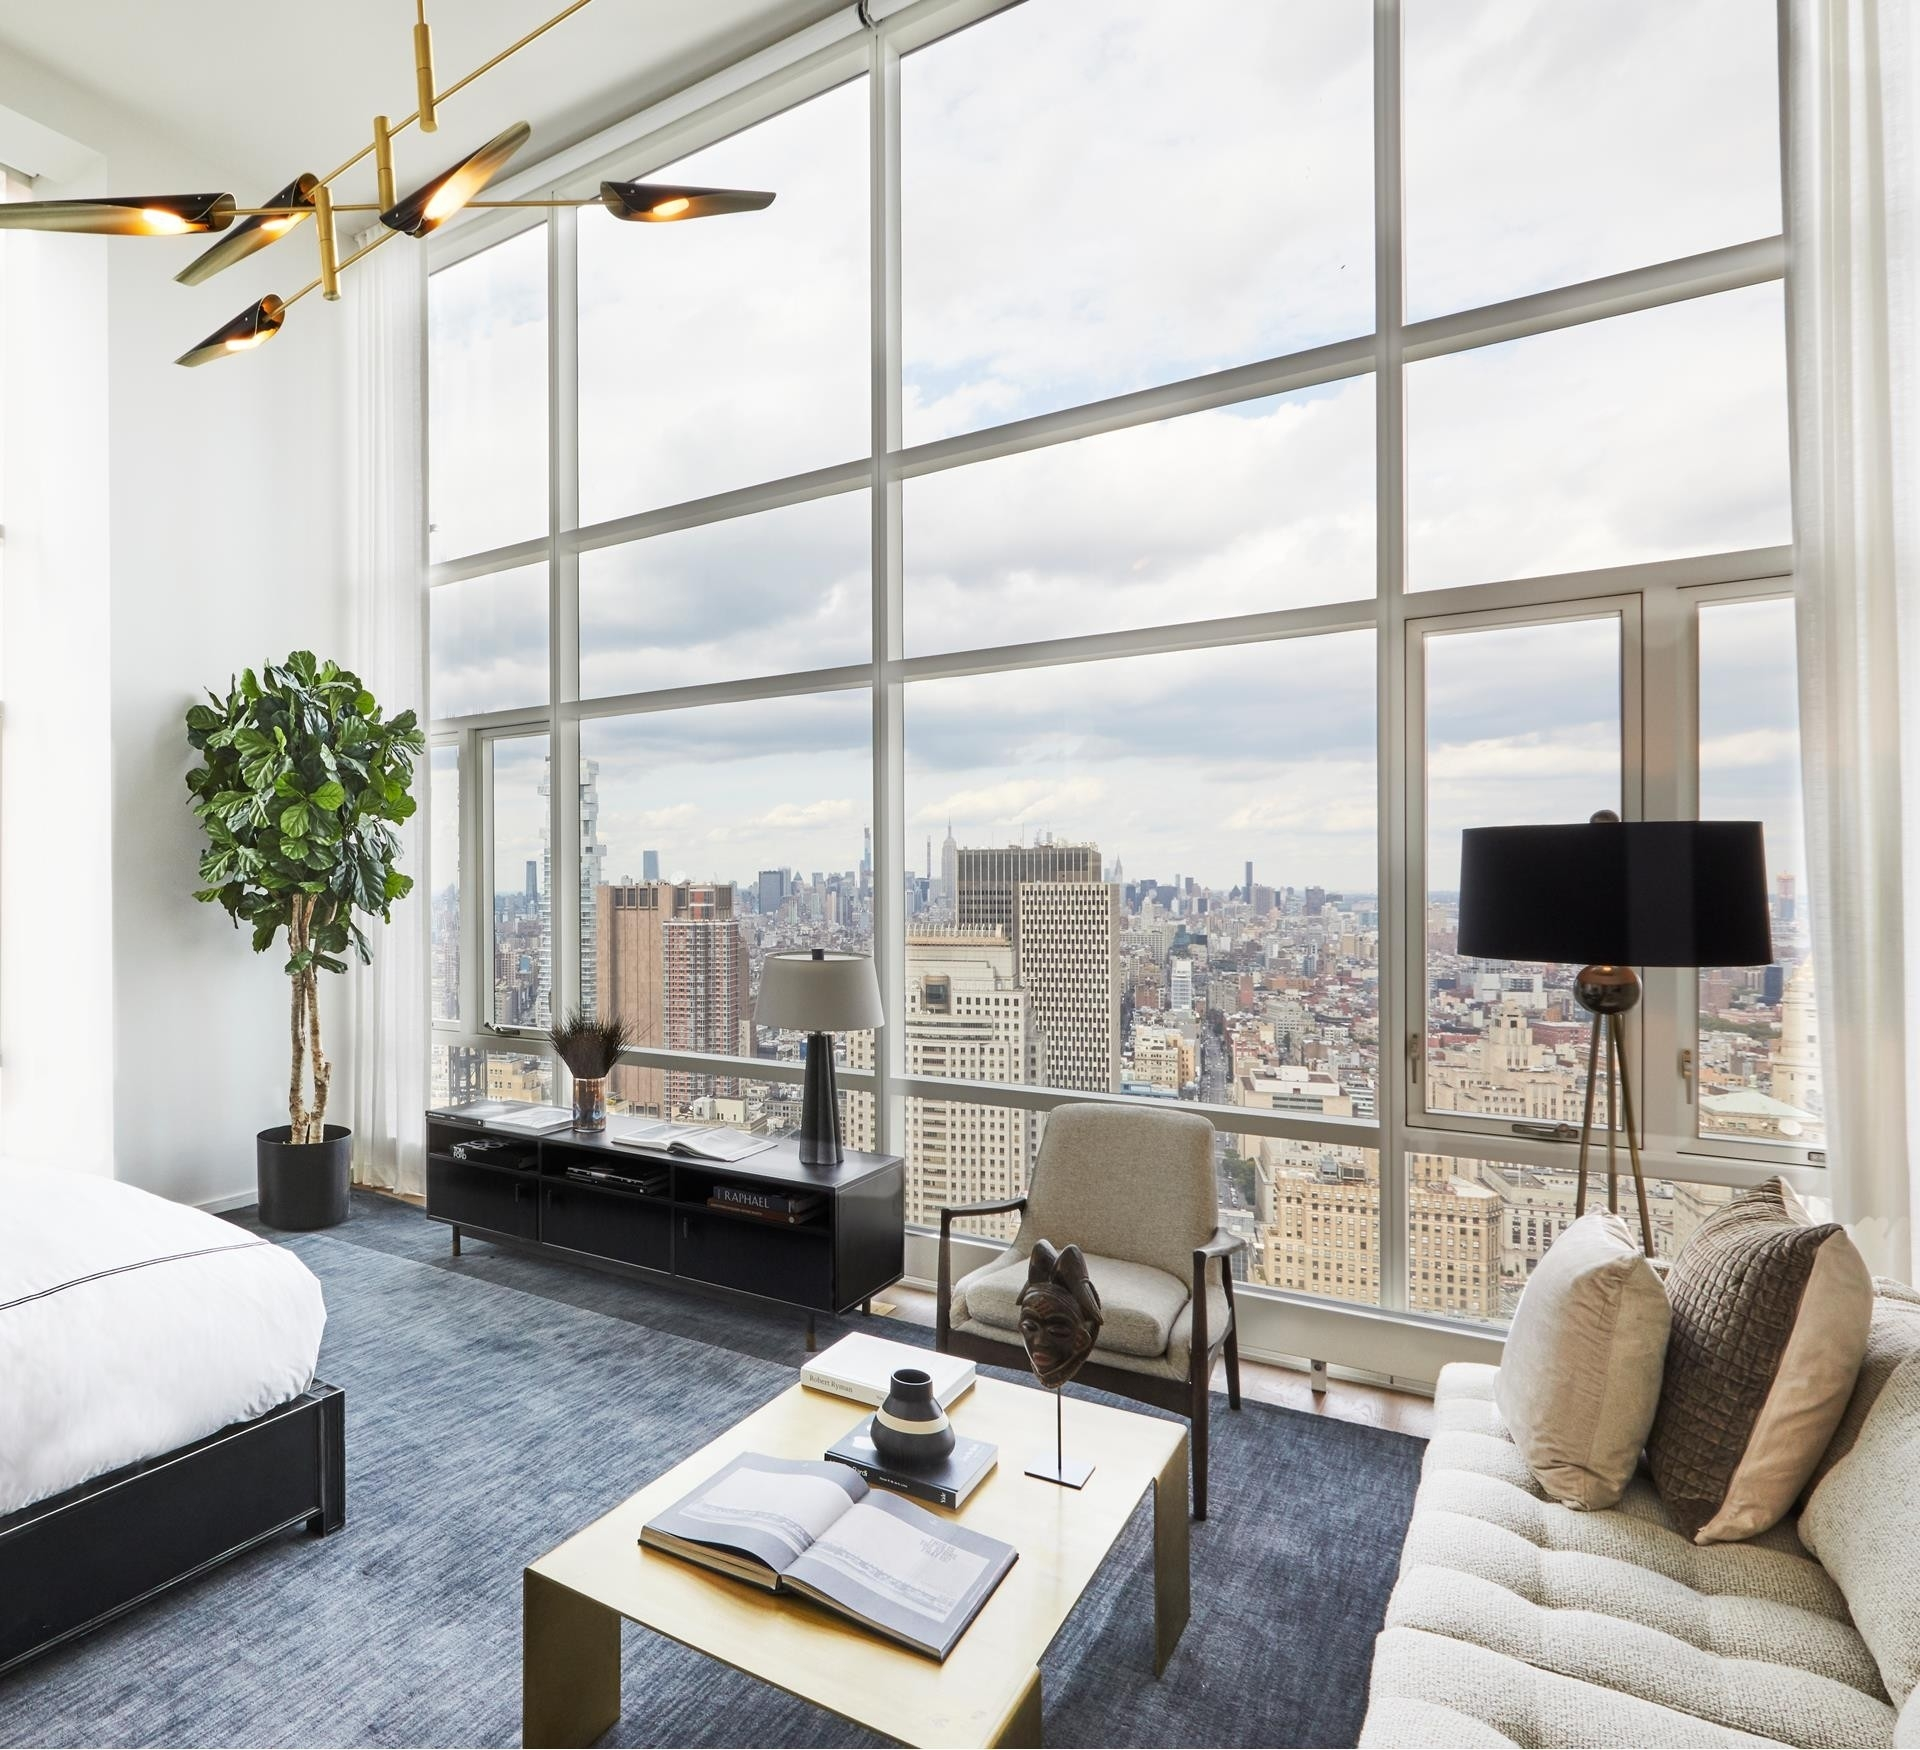 12. Condominiums for Sale at The Beekman Residences, 5 Beekman St, PH Financial District, New York, NY 10038